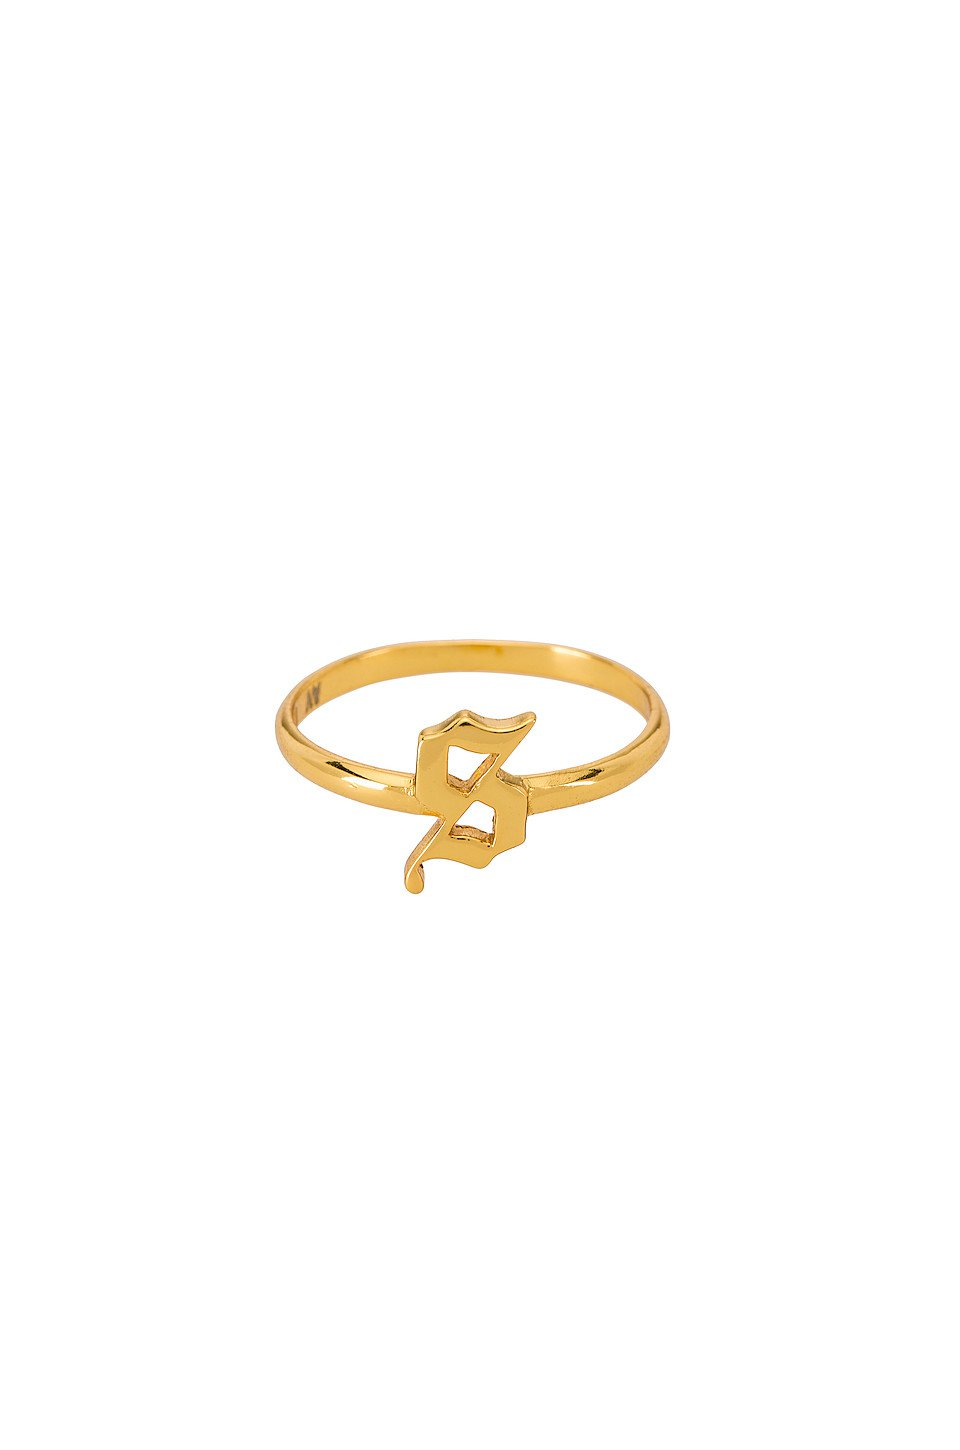 The Gothic Letter S Ring